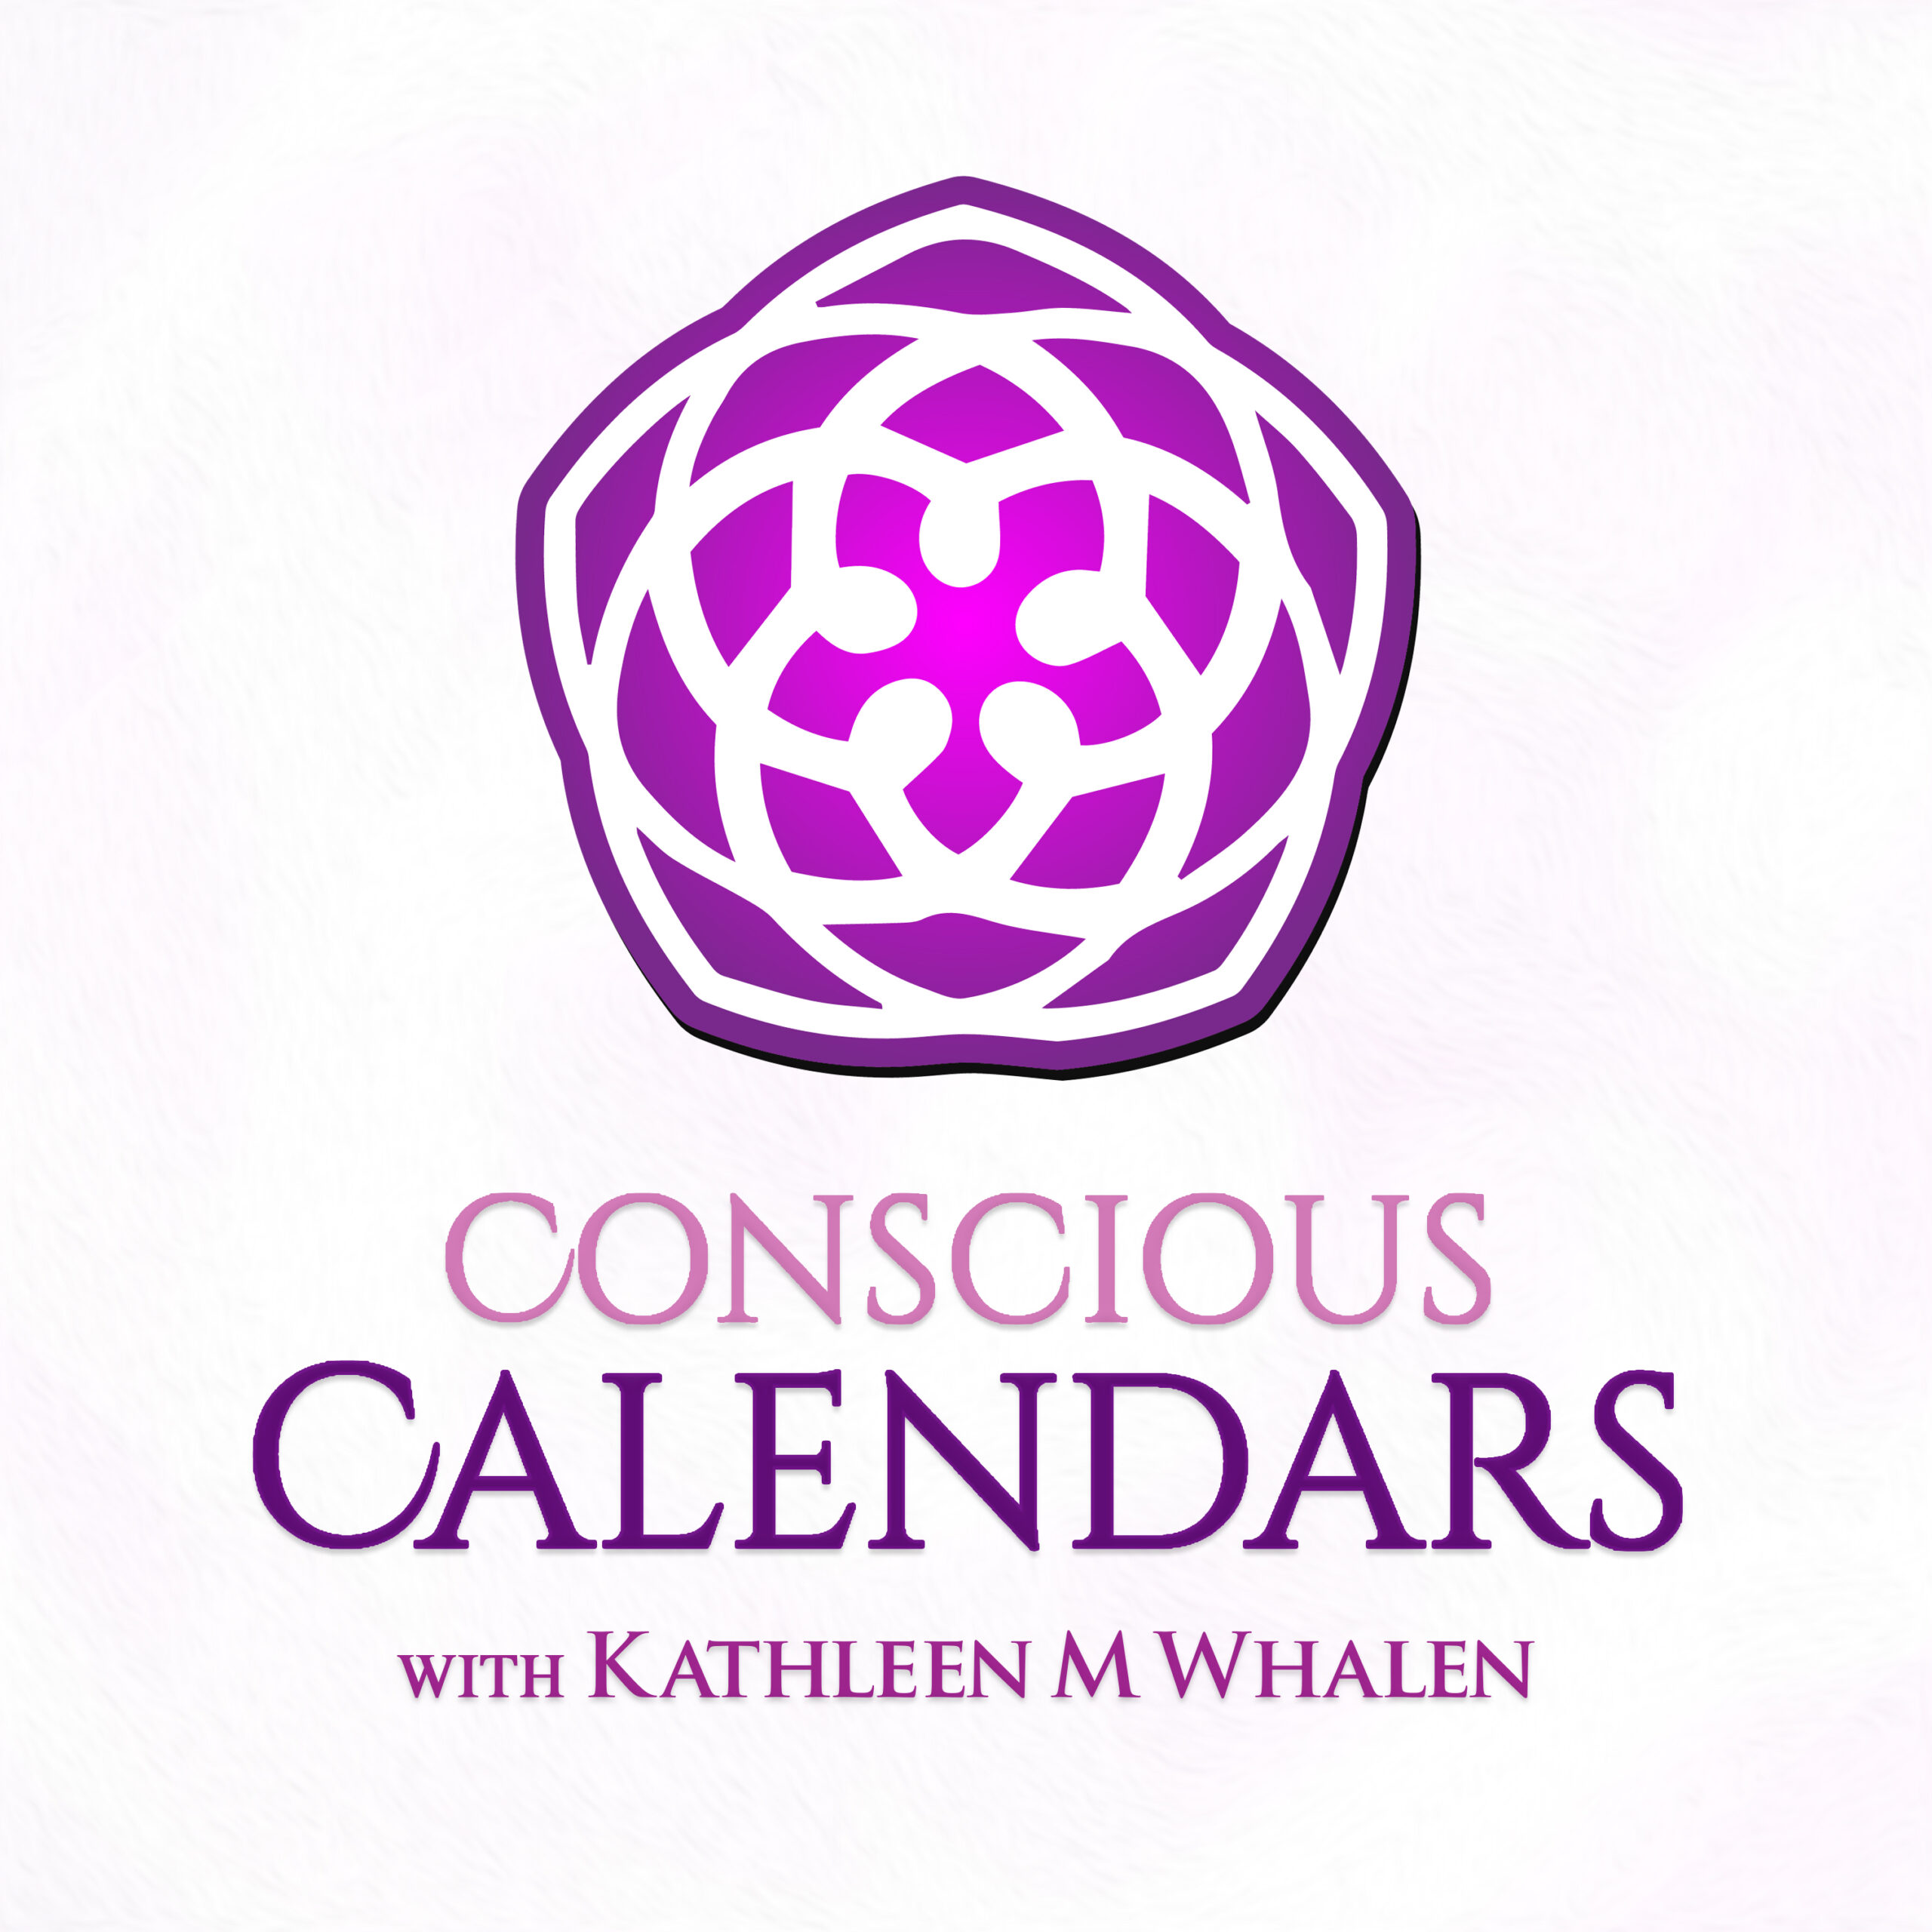 Conscious Calendars Podcast with Kathleen M Whalen